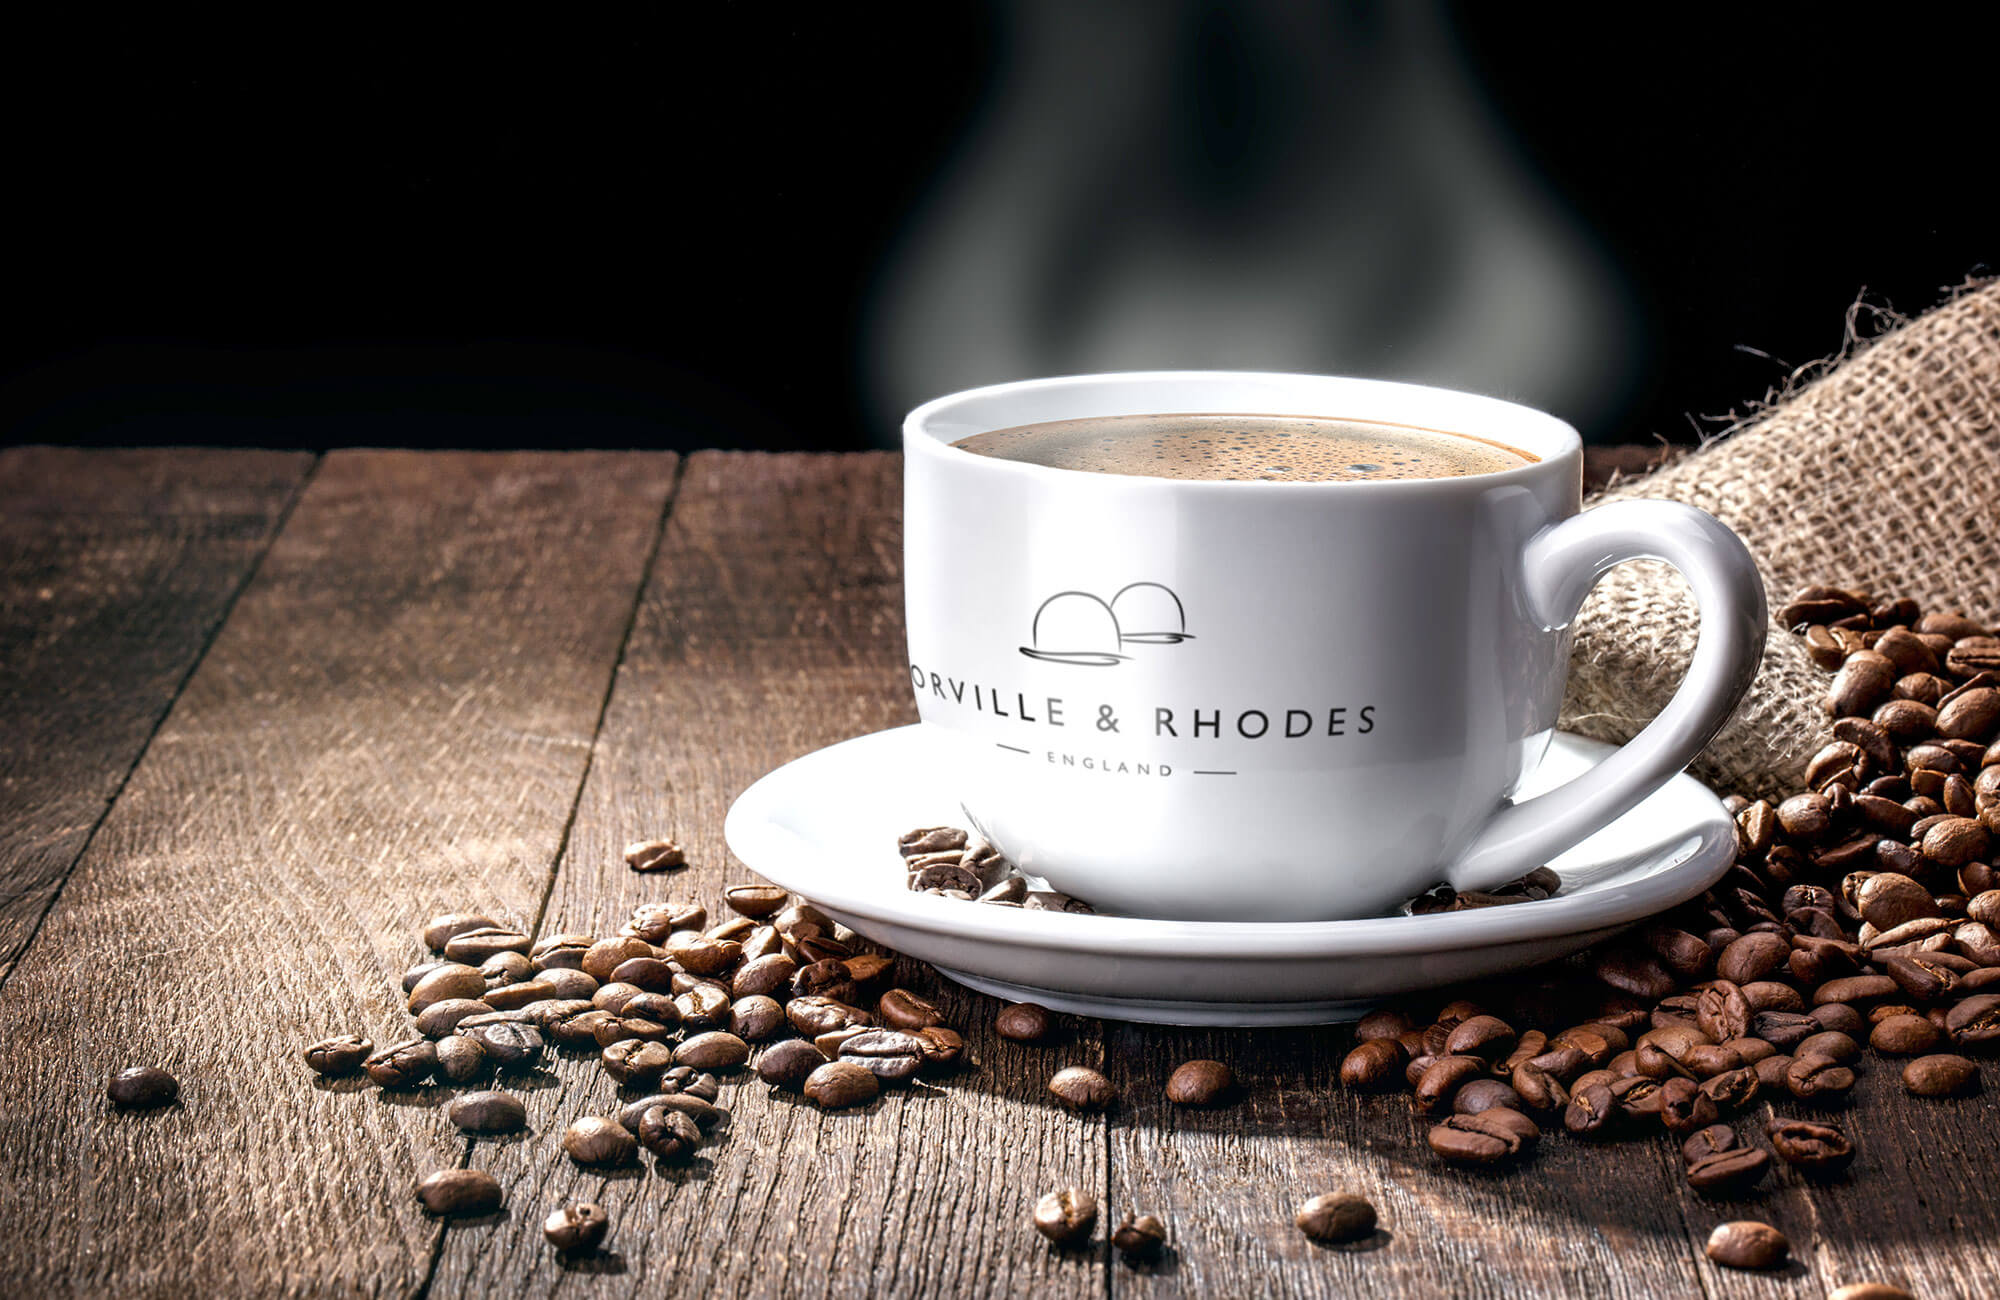 Orville & Rhodes Branded Coffee Cups